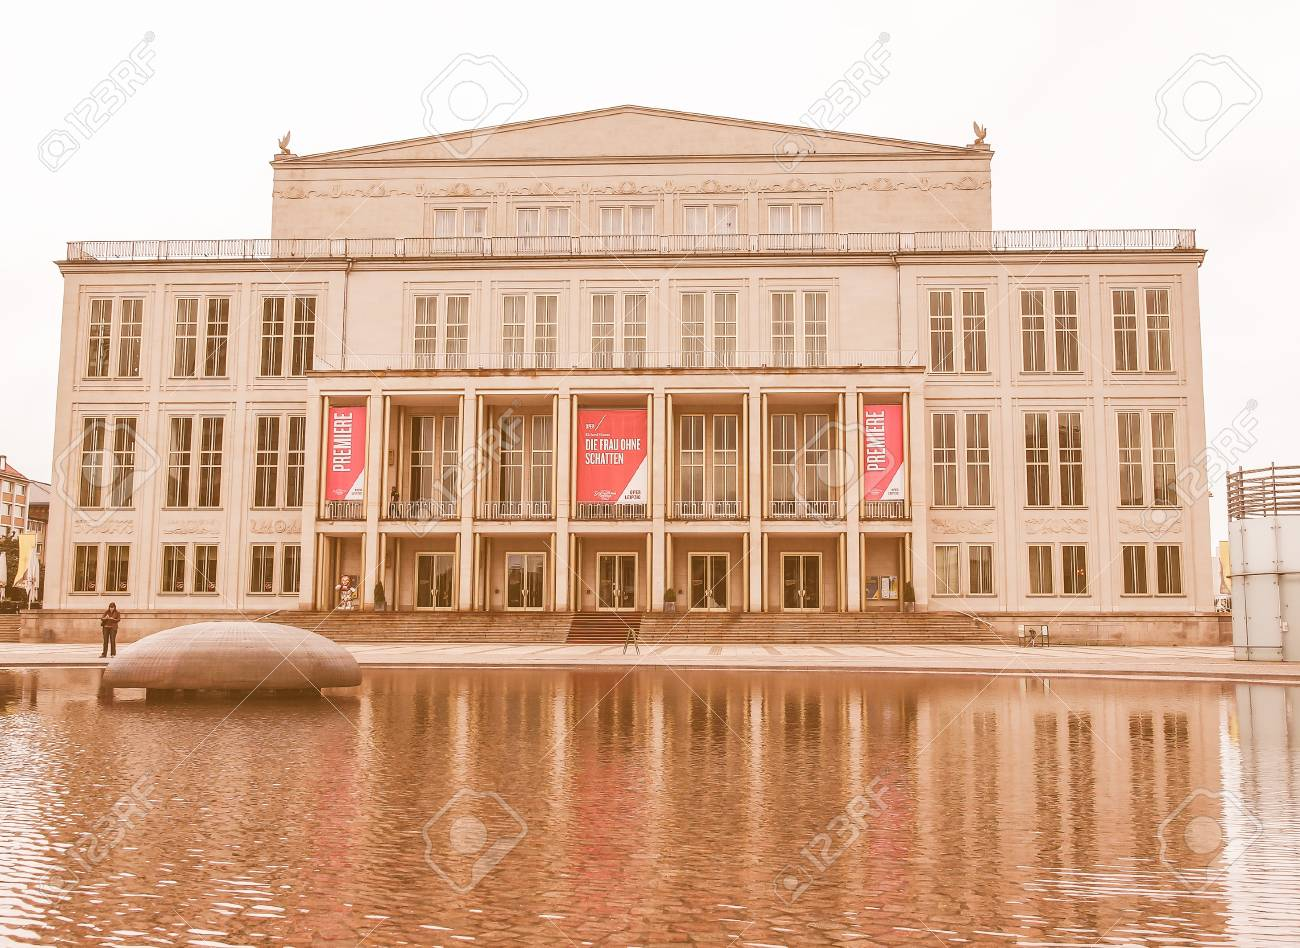 Leipzig Germany June 14 2014 The New Opera House Built In Stock Photo Picture And Royalty Free Image Image 53491393